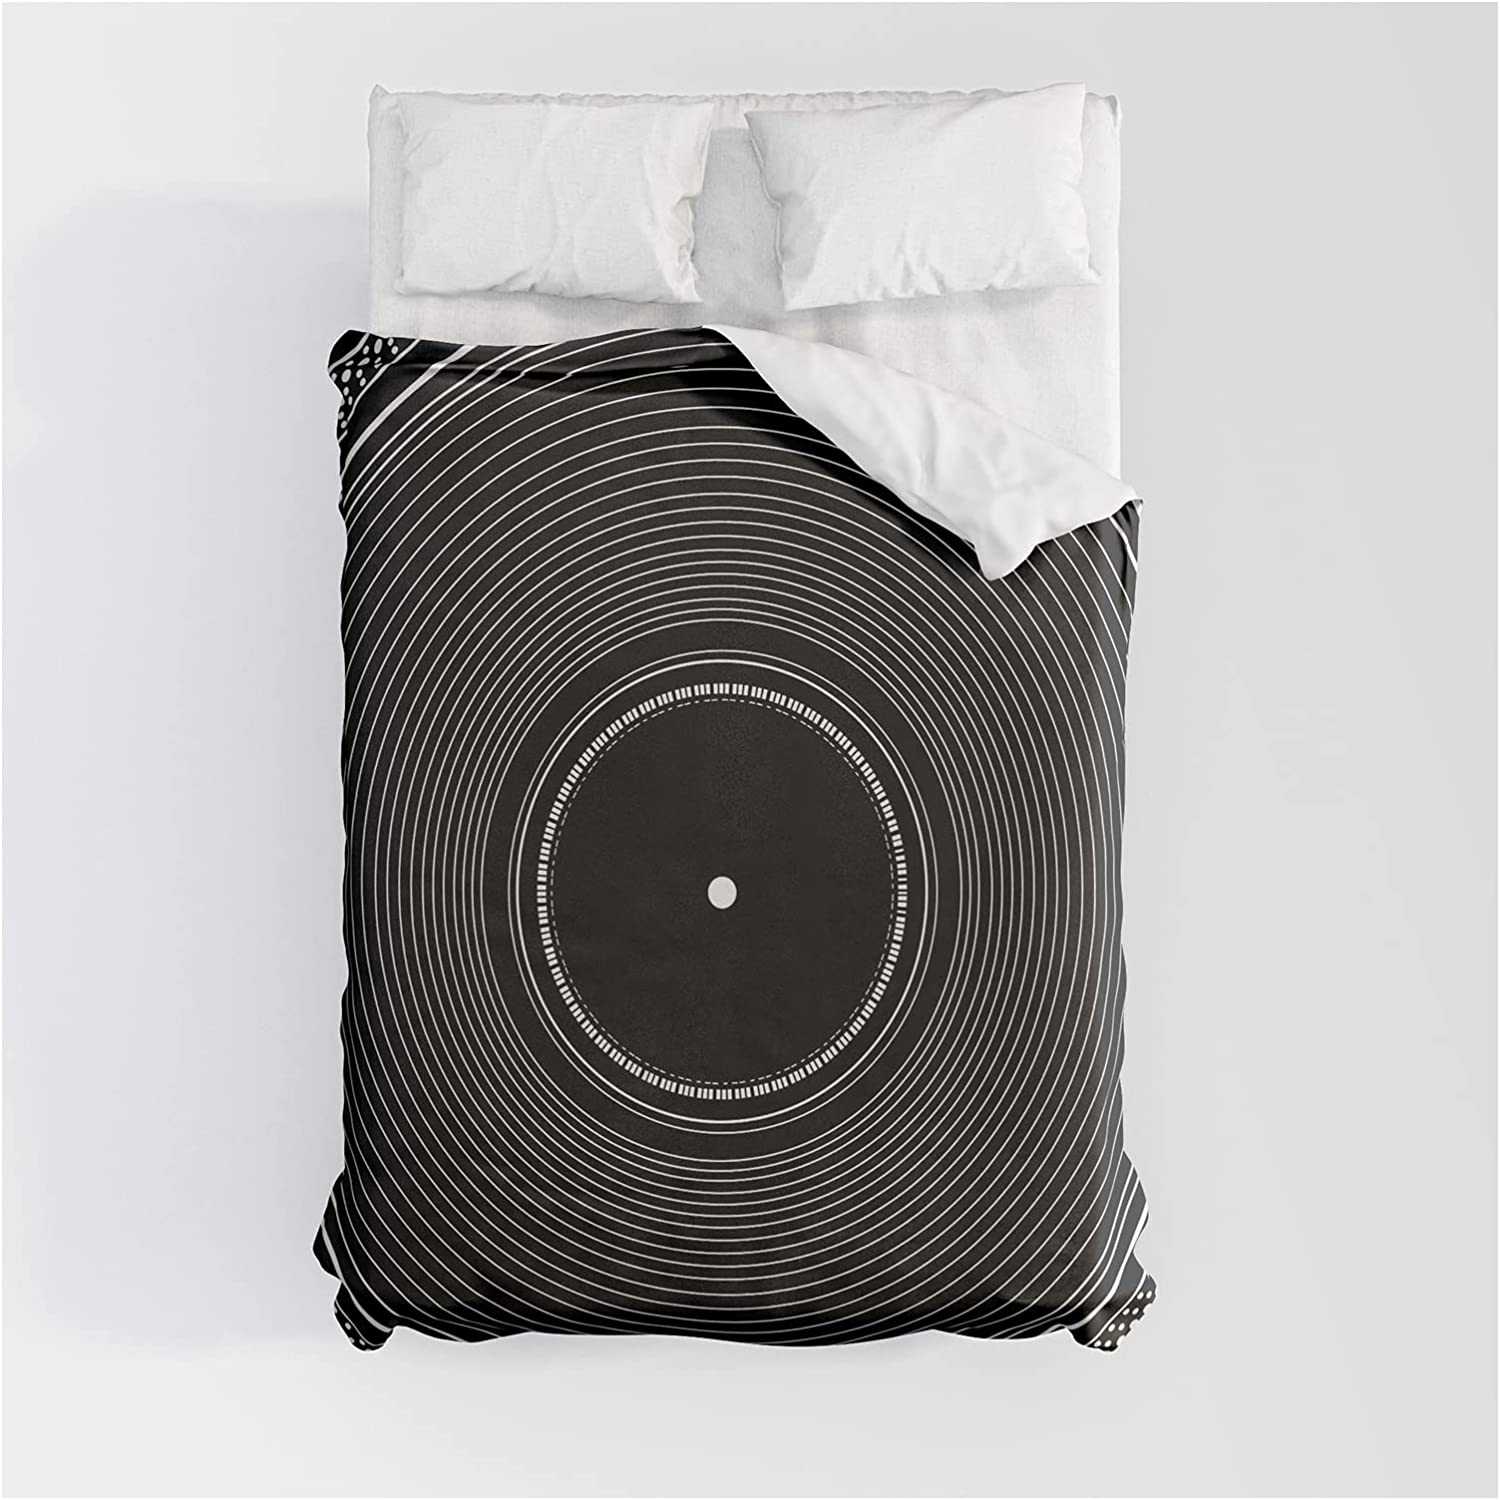 Import Dj Turntable Regular store - Technics by Pons Design'o Synthetic Duvet on Cove